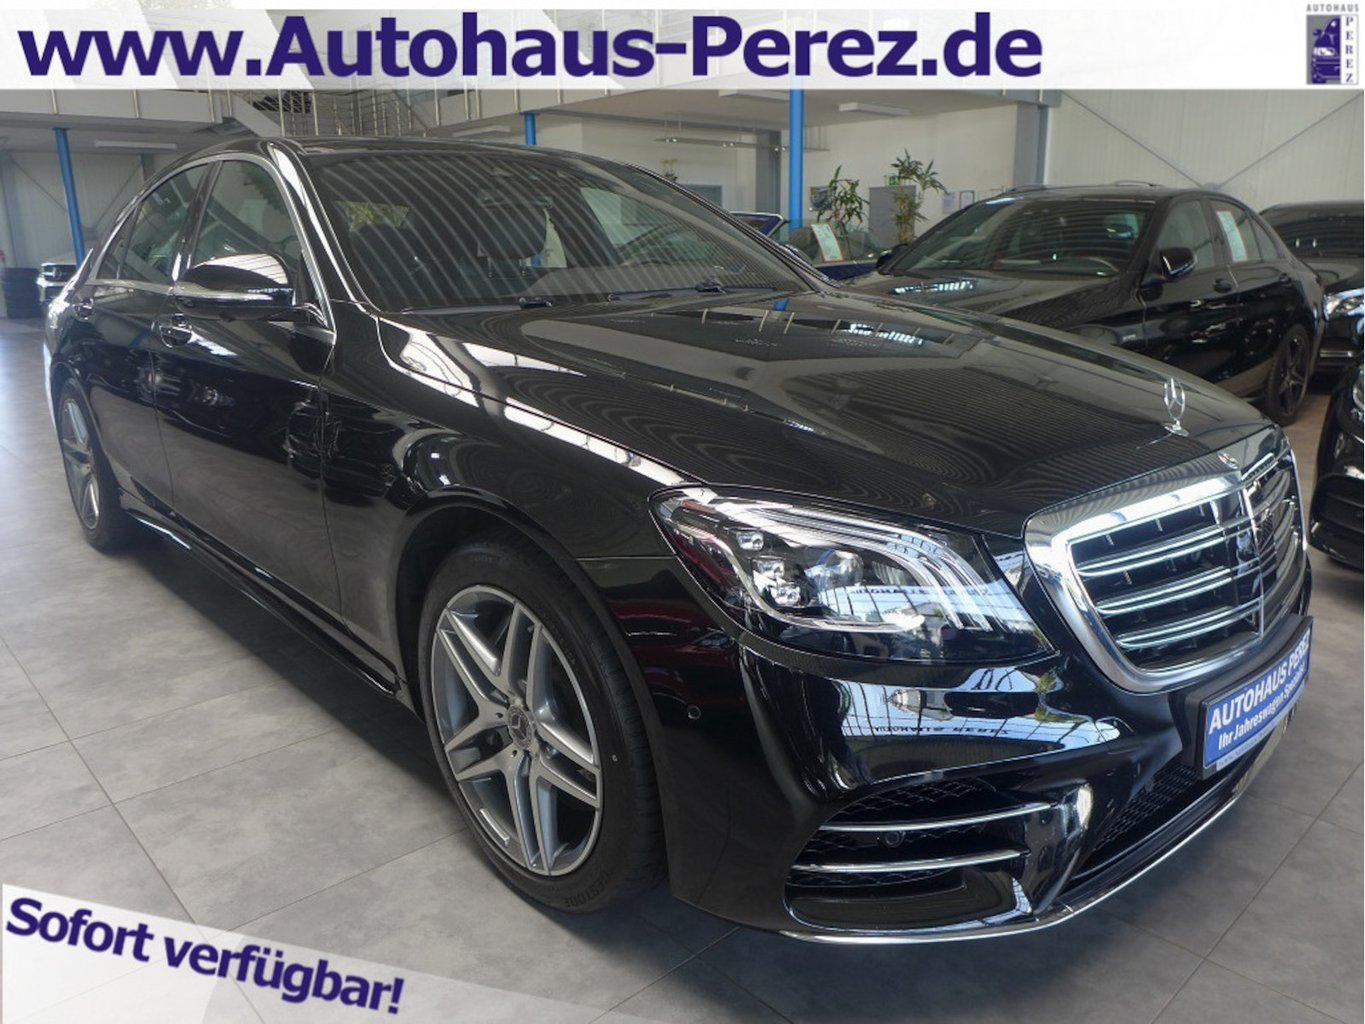 Mercedes-Benz S 450 AMG TV-NACHTSICHT-HUD-ENTERTAIN-DISTR-BEAM, Jahr 2018, Benzin